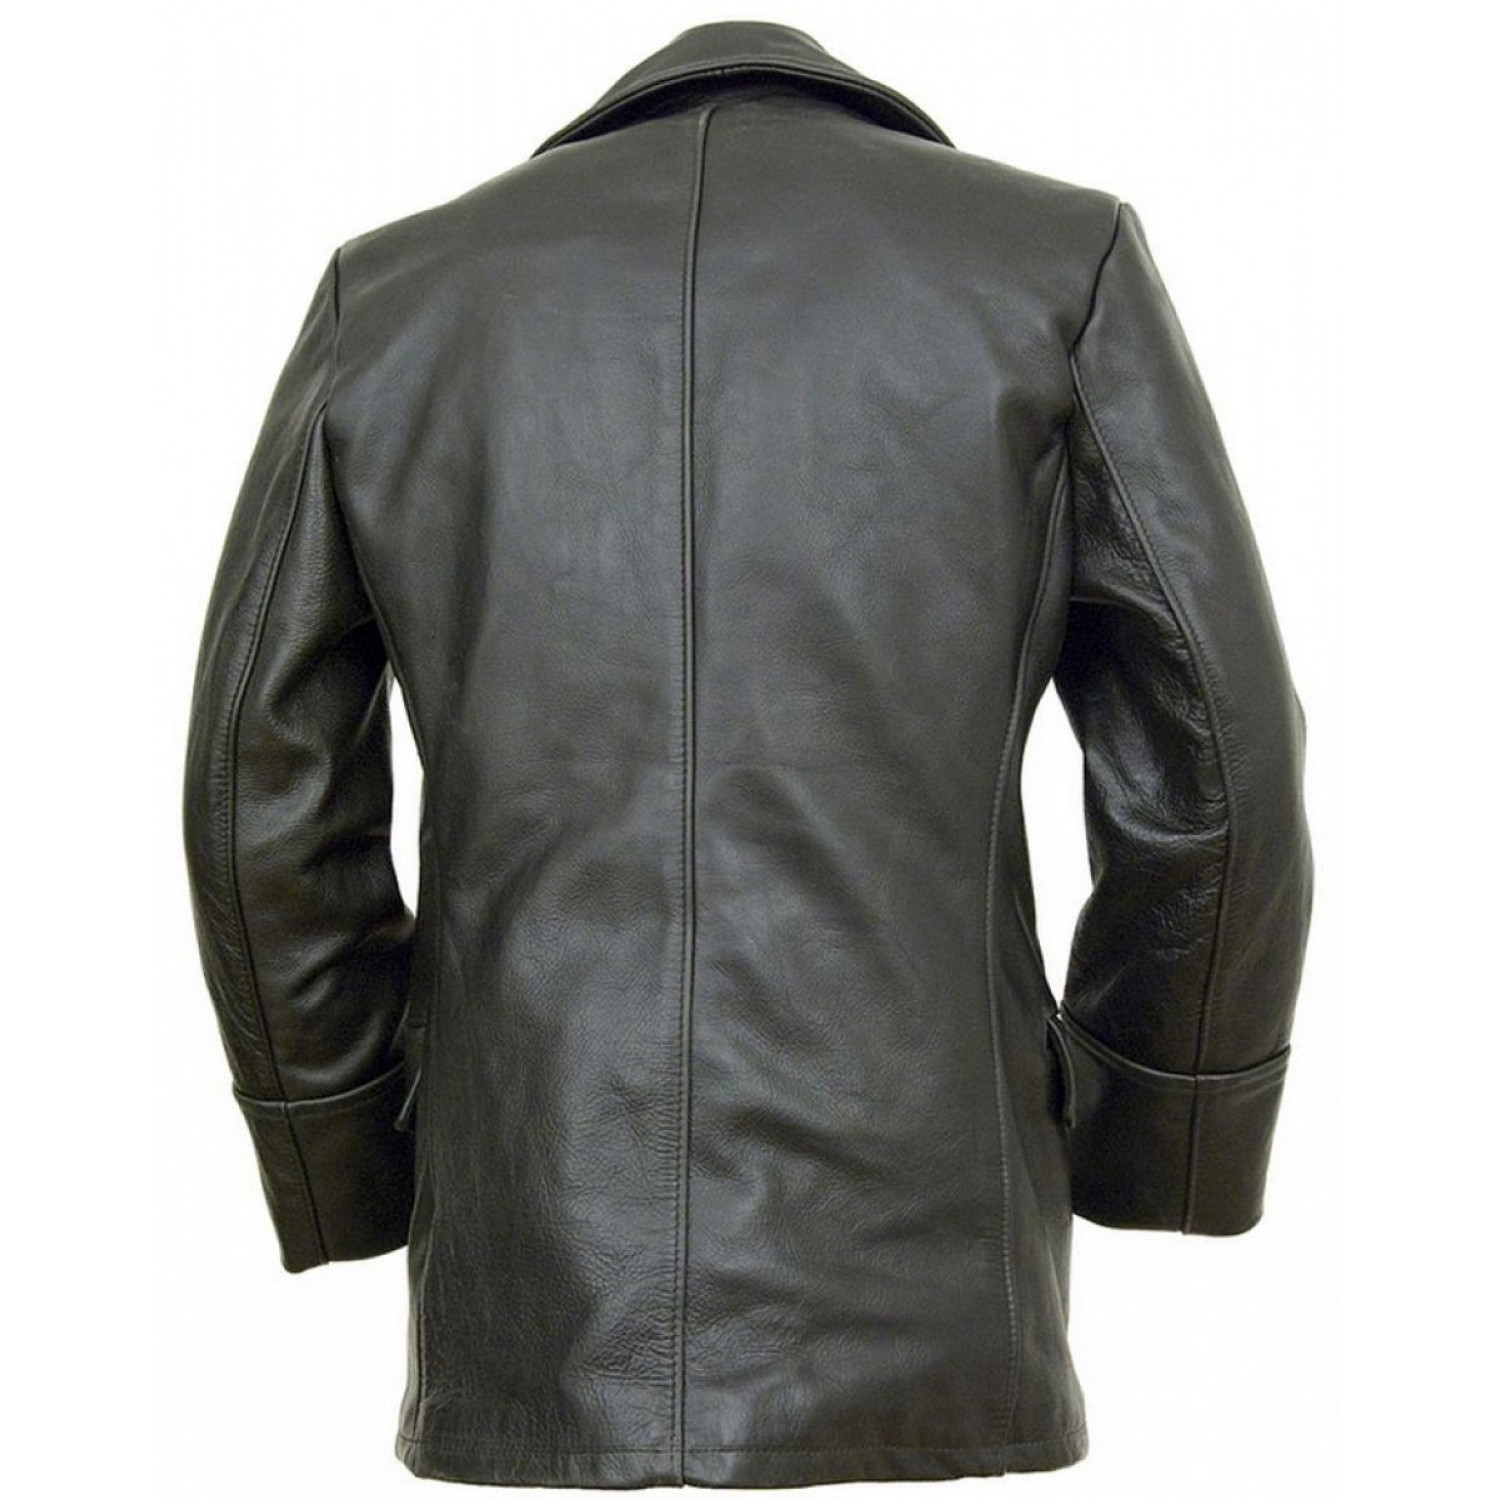 Бушлат кожаный SCHOTT Double Breasted Black Military Leather Jacket 650